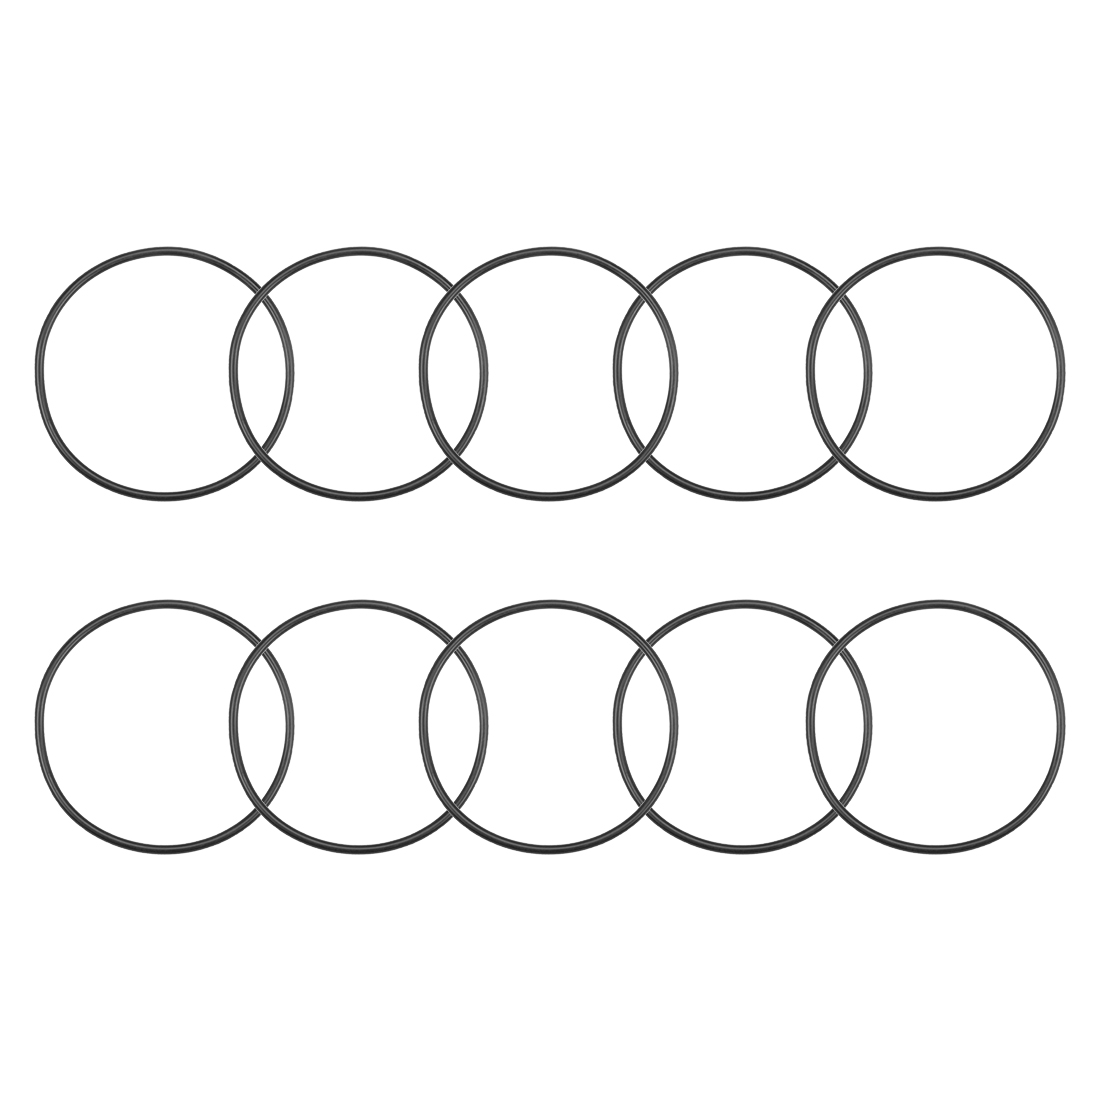 O-Rings Nitrile Rubber 63mm x 68.3mm x 2.65mm Round Seal Gasket 10 Pcs